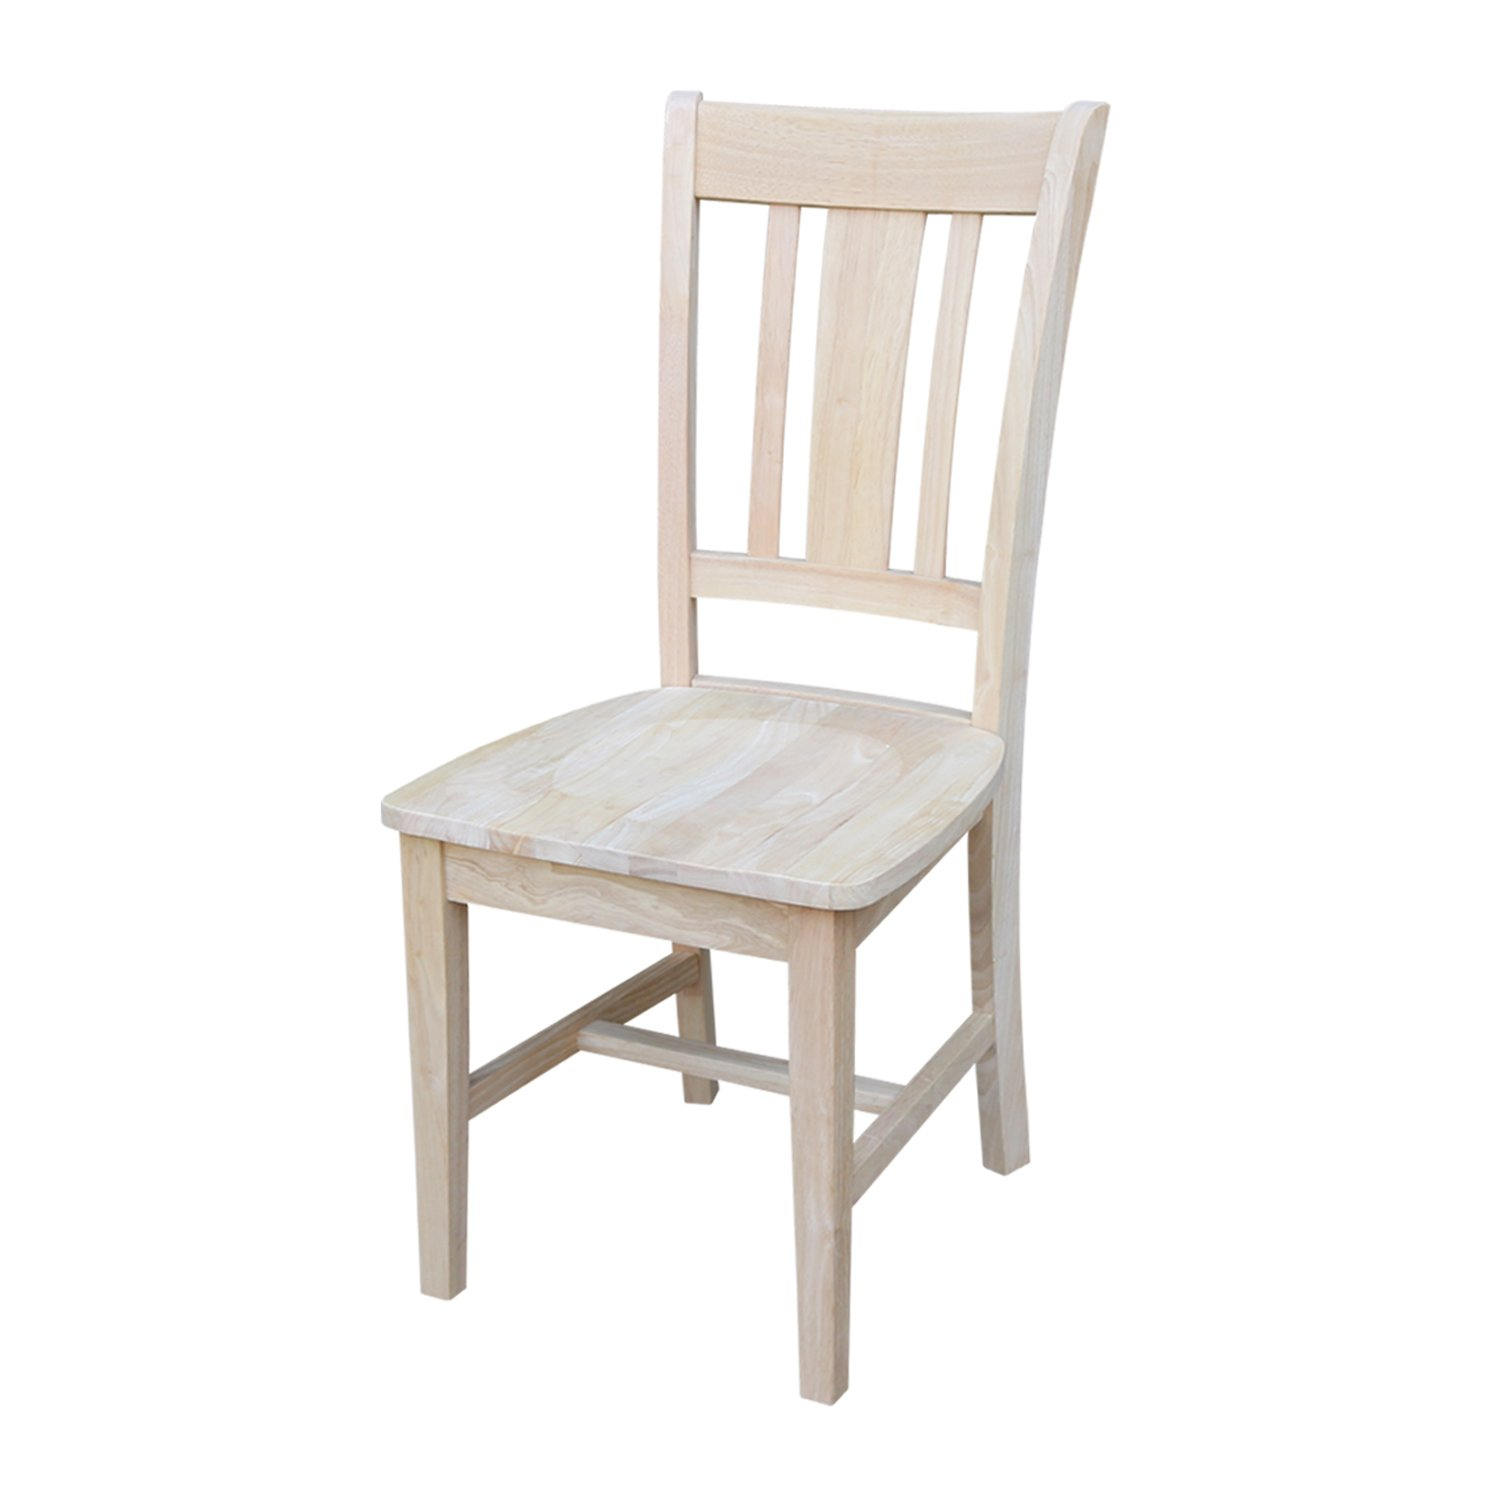 International Concepts C-10P Pair of Slat Back Chairs, Unfinished